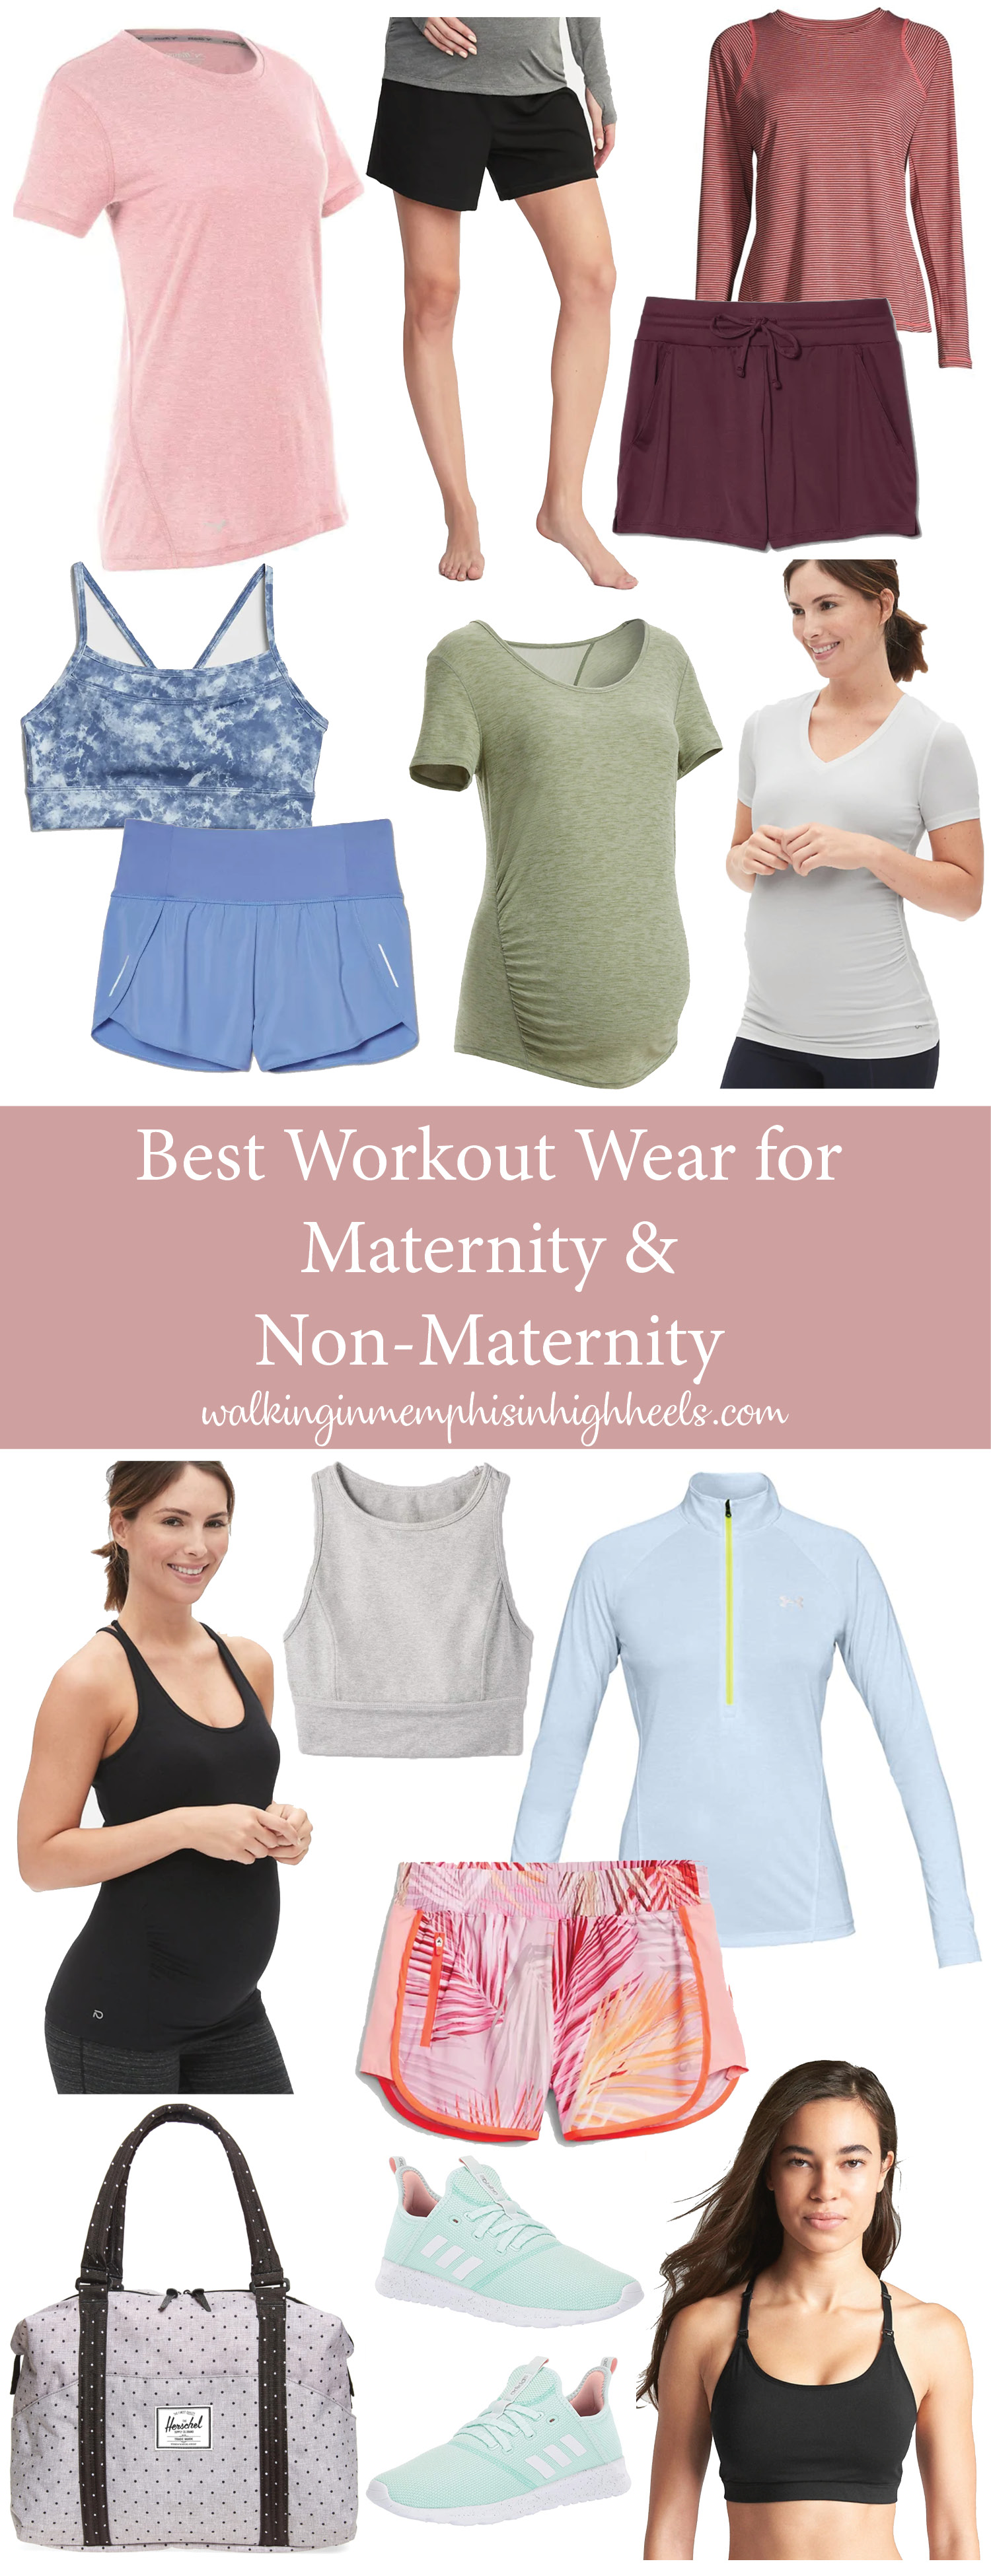 Best Maternity & Non-Maternity Summer Workout Wear